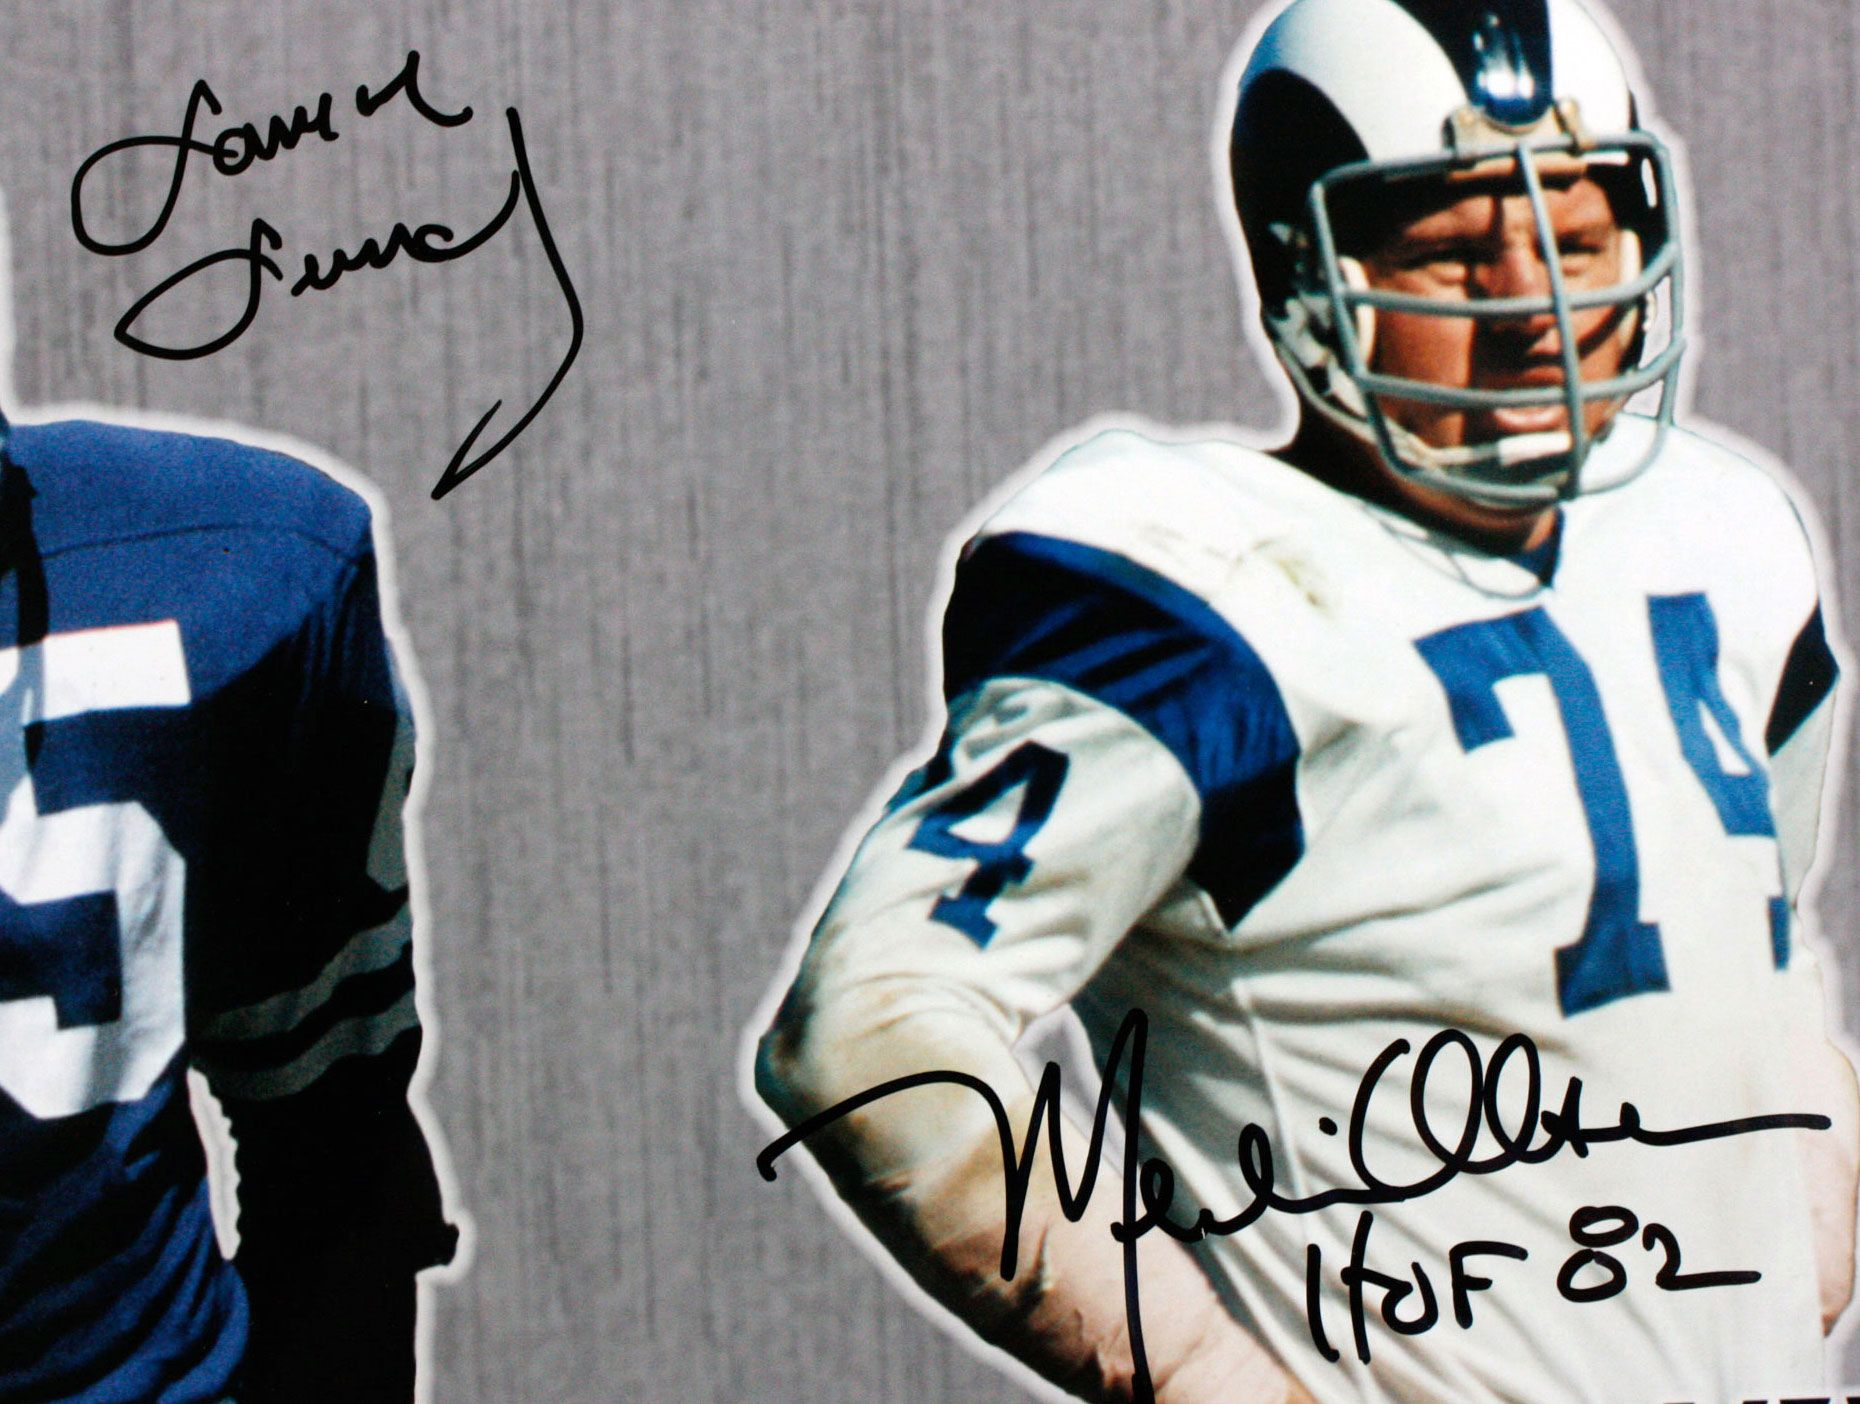 0489618ff Lot Detail - Lot of 2 Fearsome Four 16x20 Photo Autographed by ...